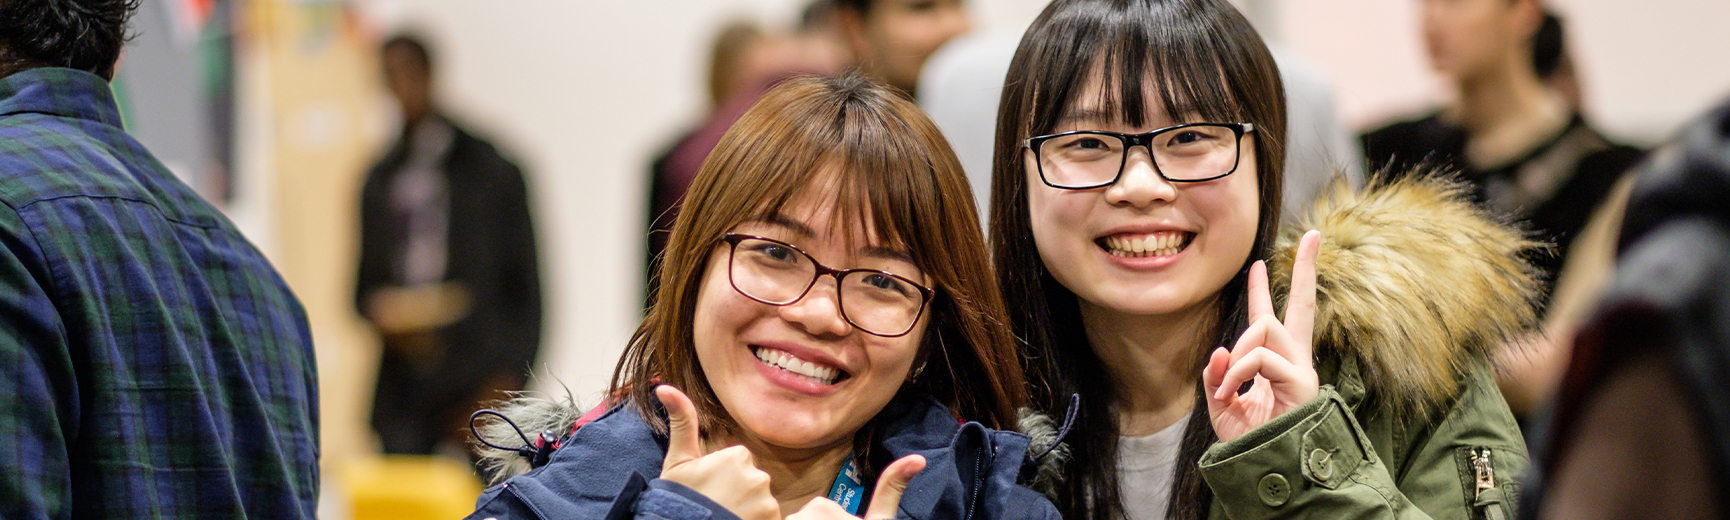 Two female students at event on campus